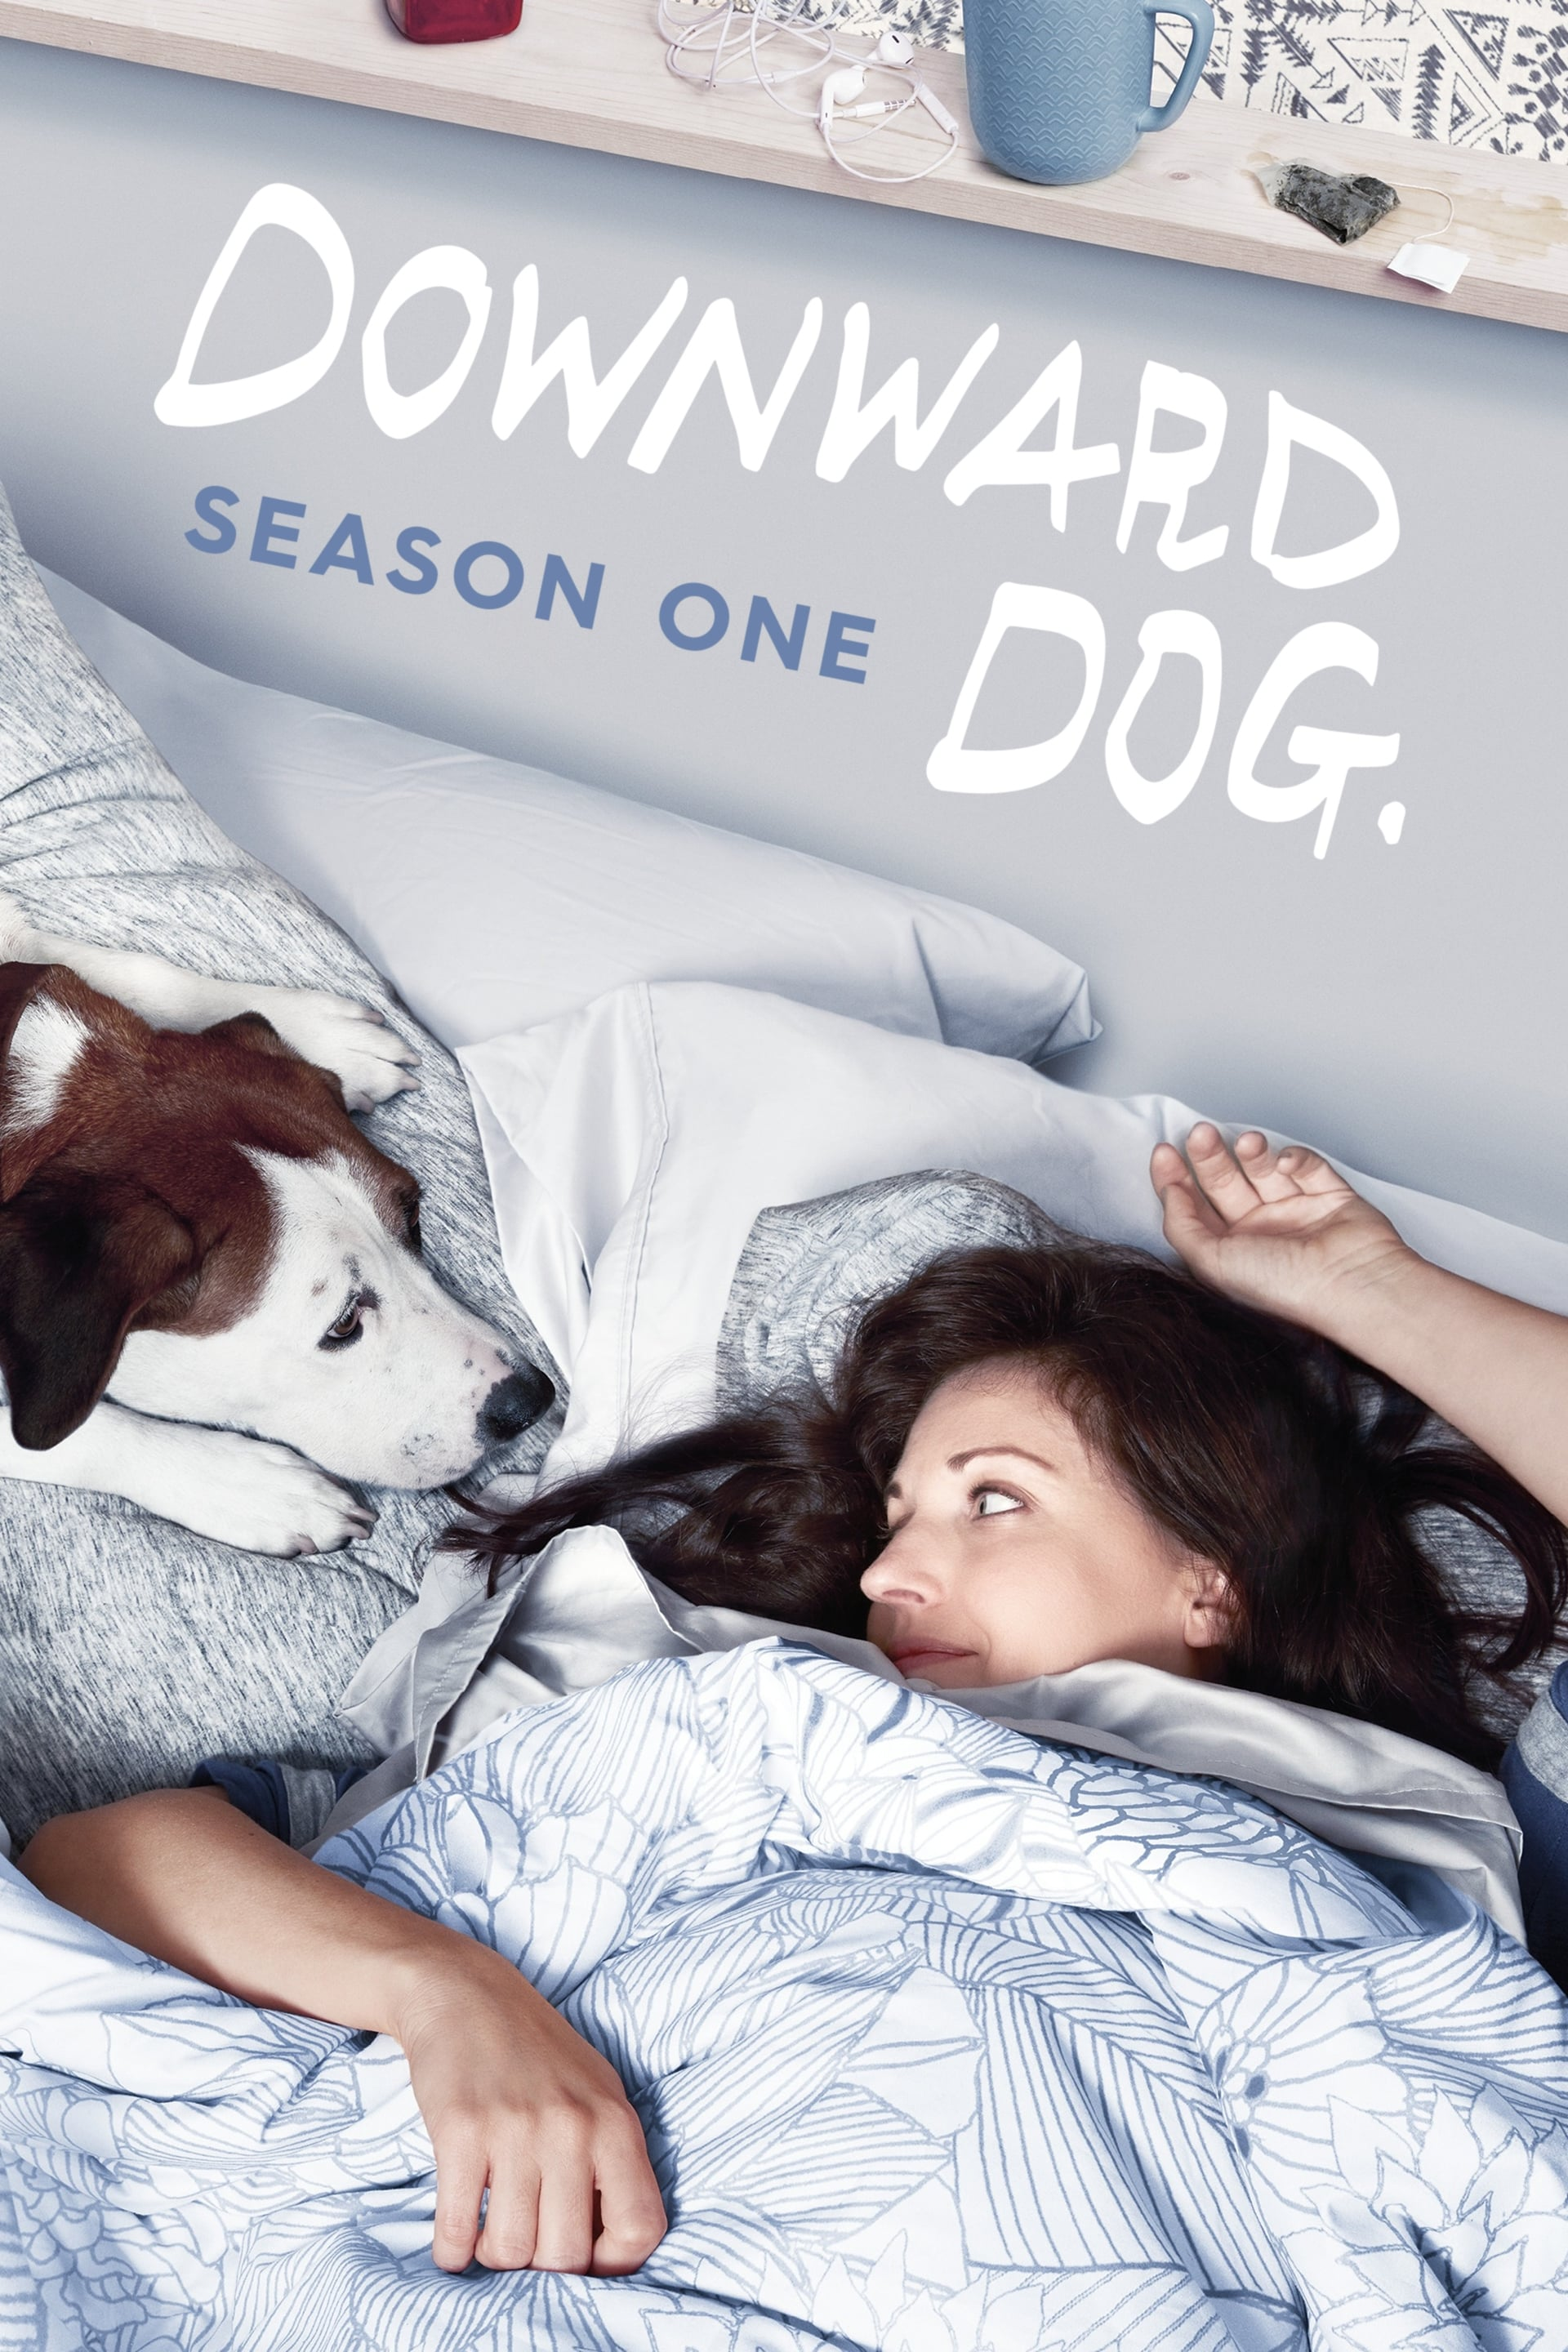 Downward Dog Season 1 putlocker 4k